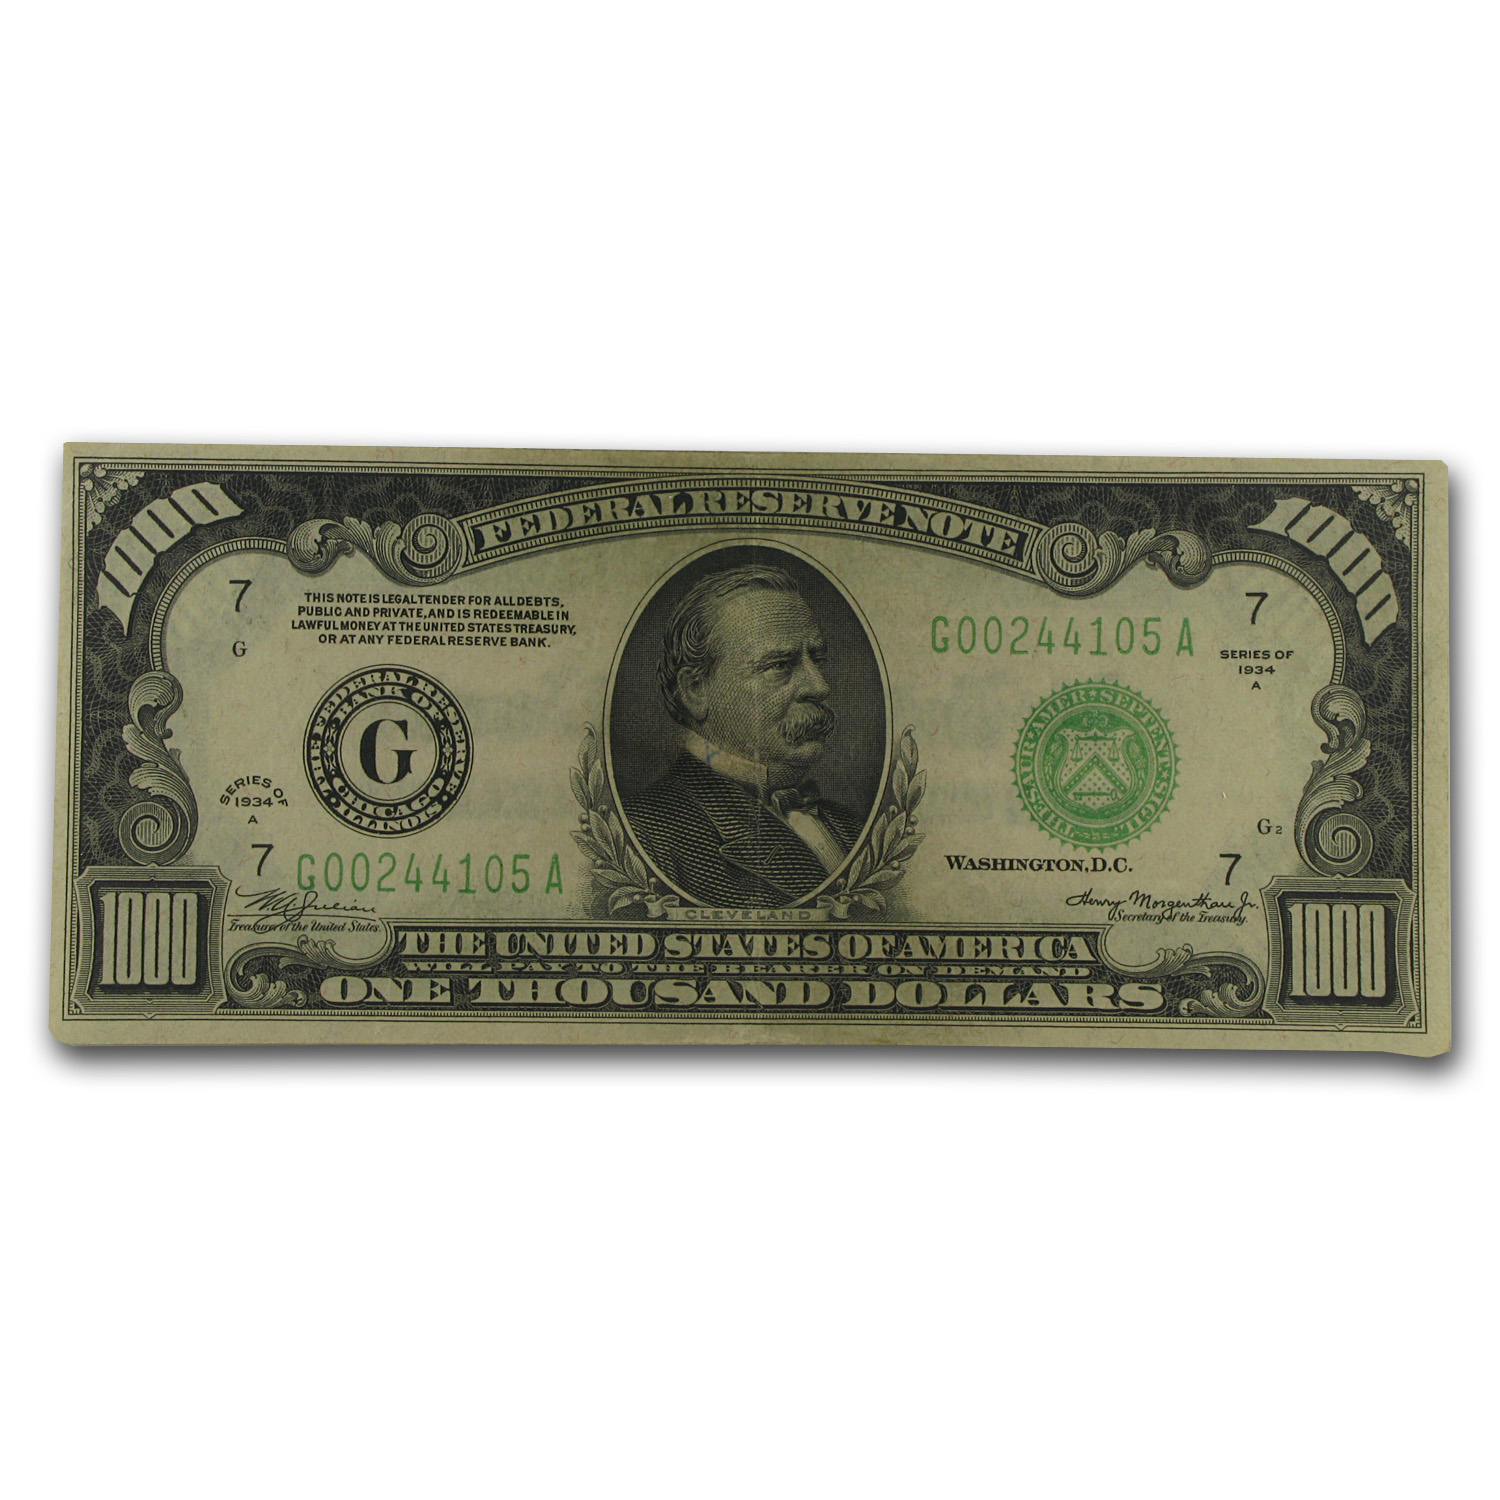 1934-A (G-Chicago) $1,000 FRN XF-45 PPQ PCGS